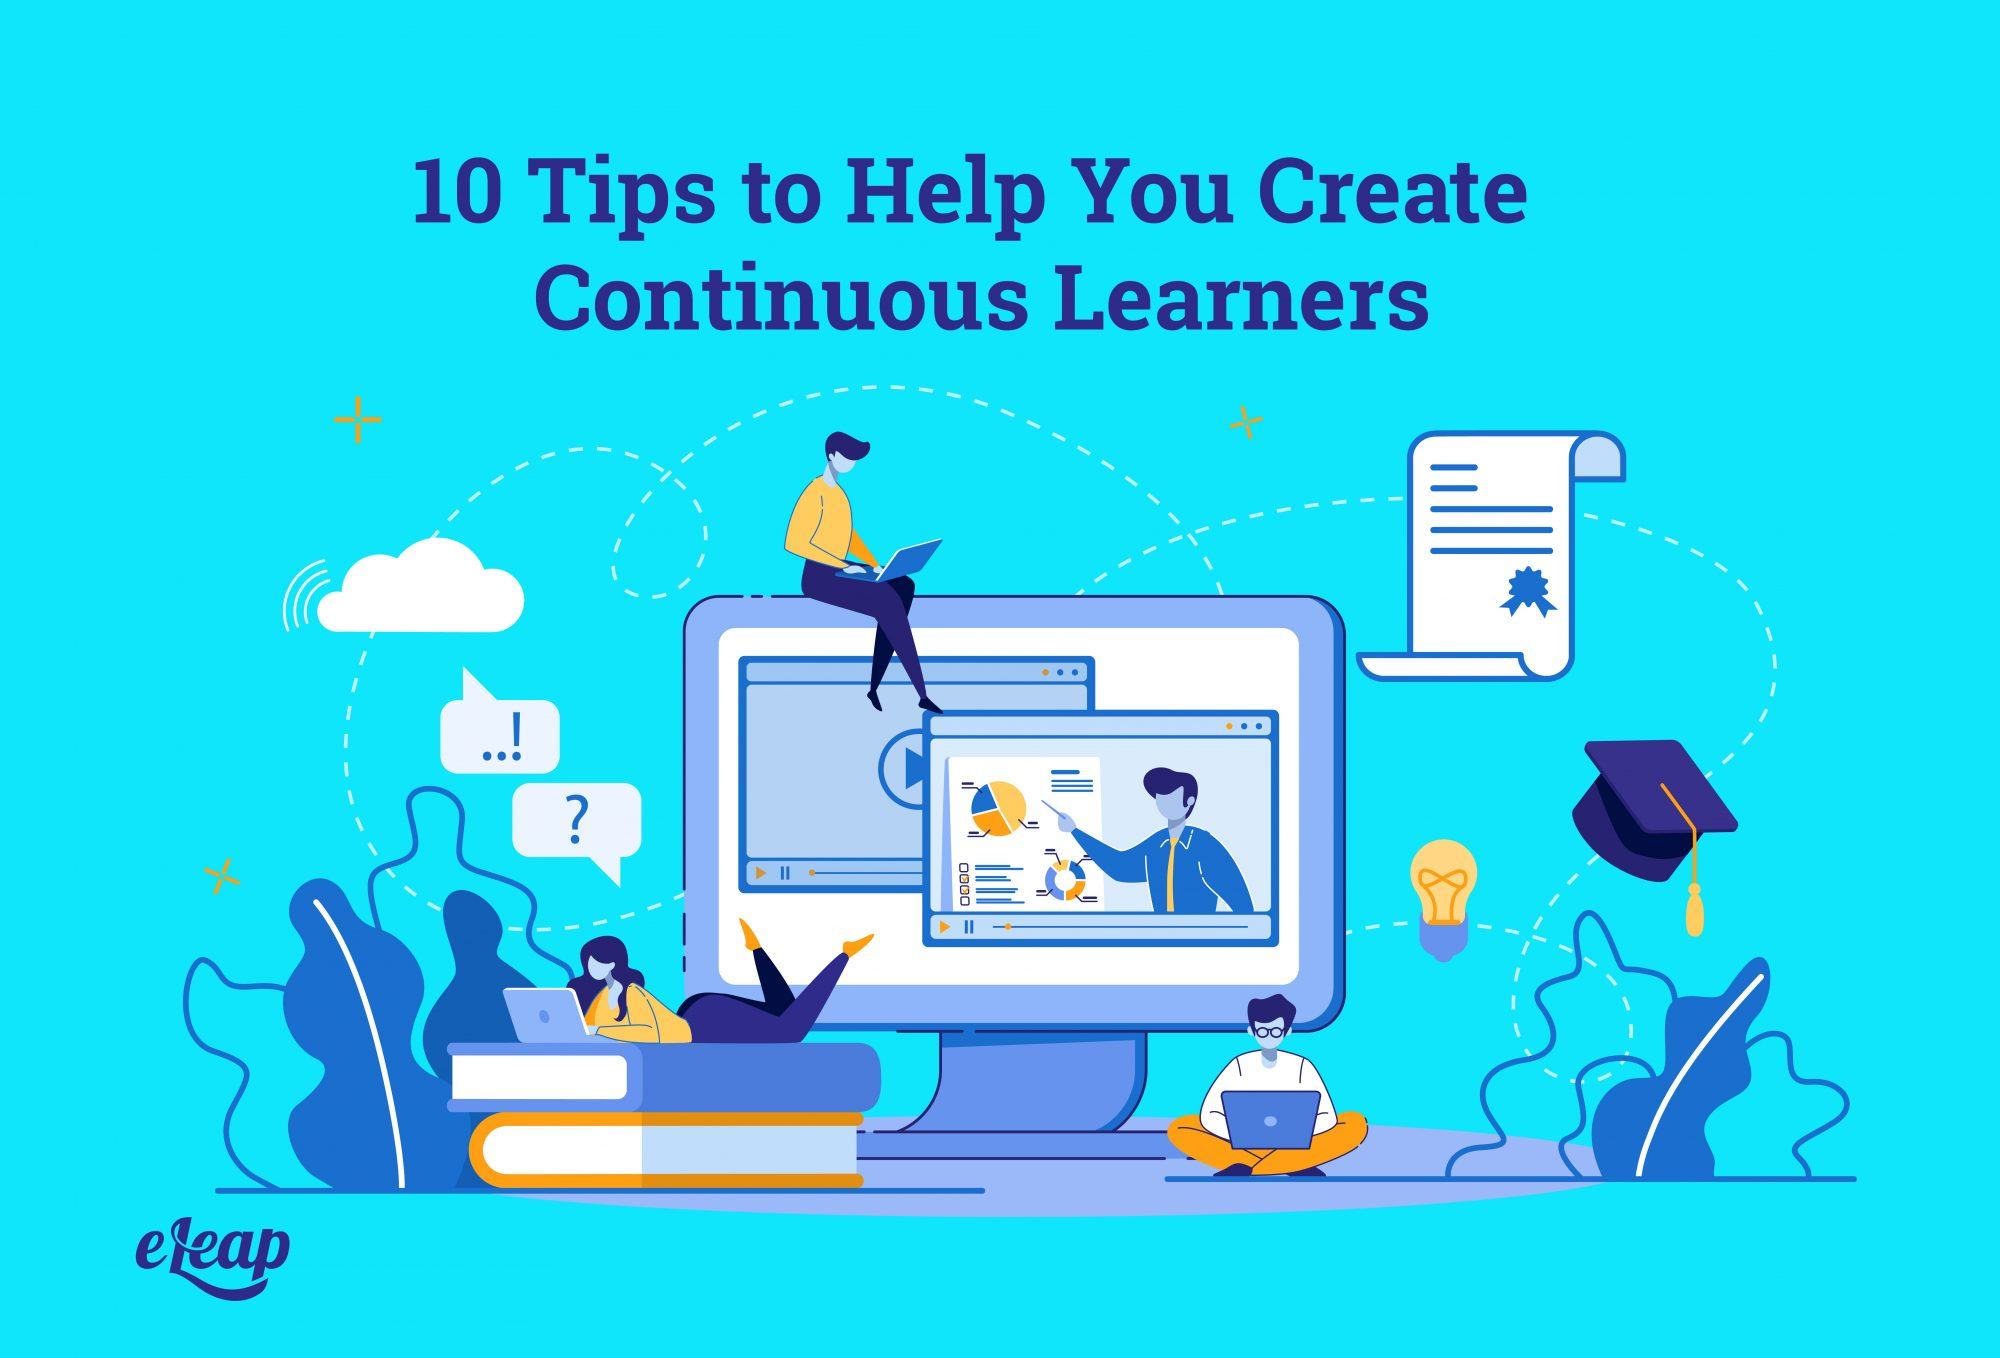 10 Tips to Help You Create Continuous Learners